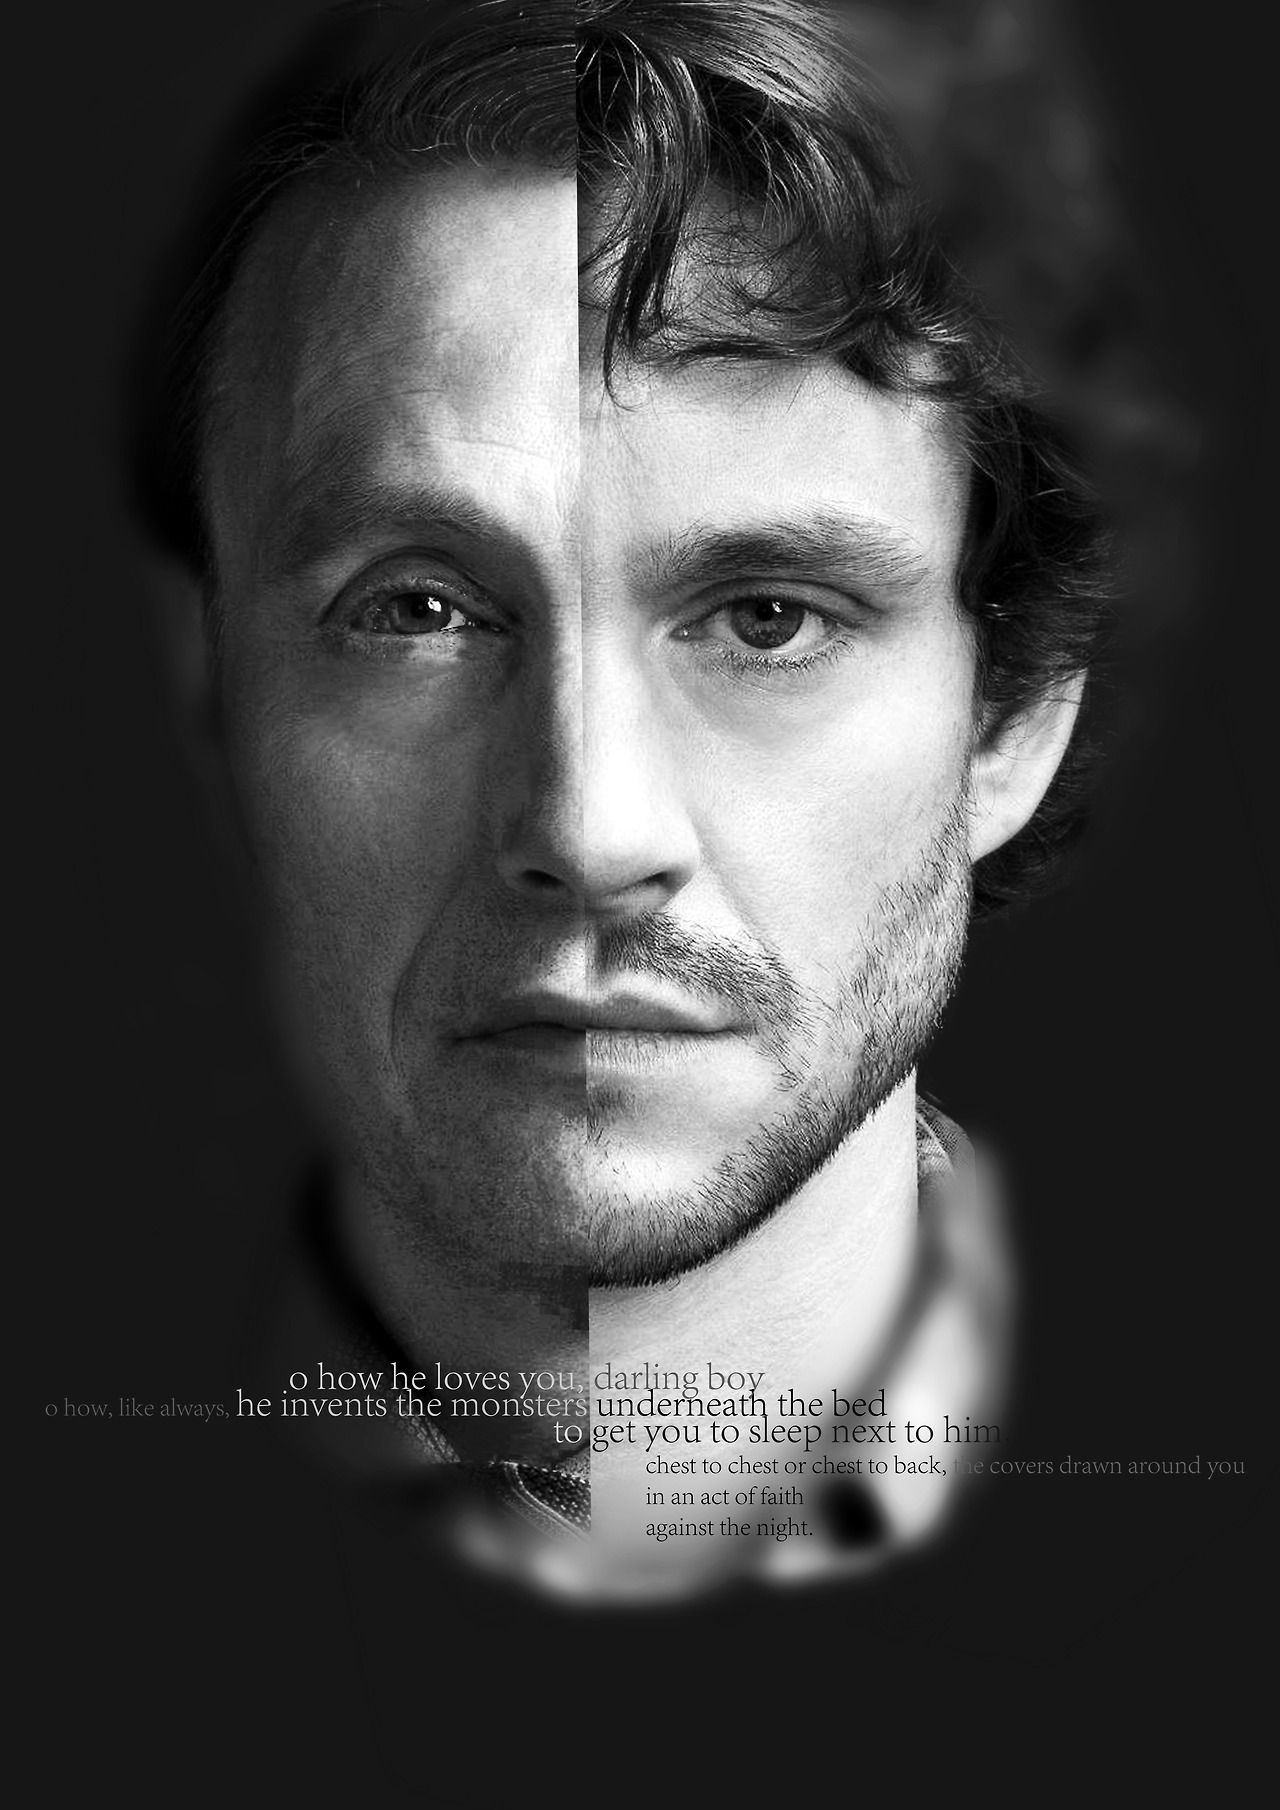 Hannibal has always been searching for the ultimate way of being. When he met Will, he found the answer. He desires the existence of Will and disgust his own. Therefore, he switched them, artistically and beautifully.